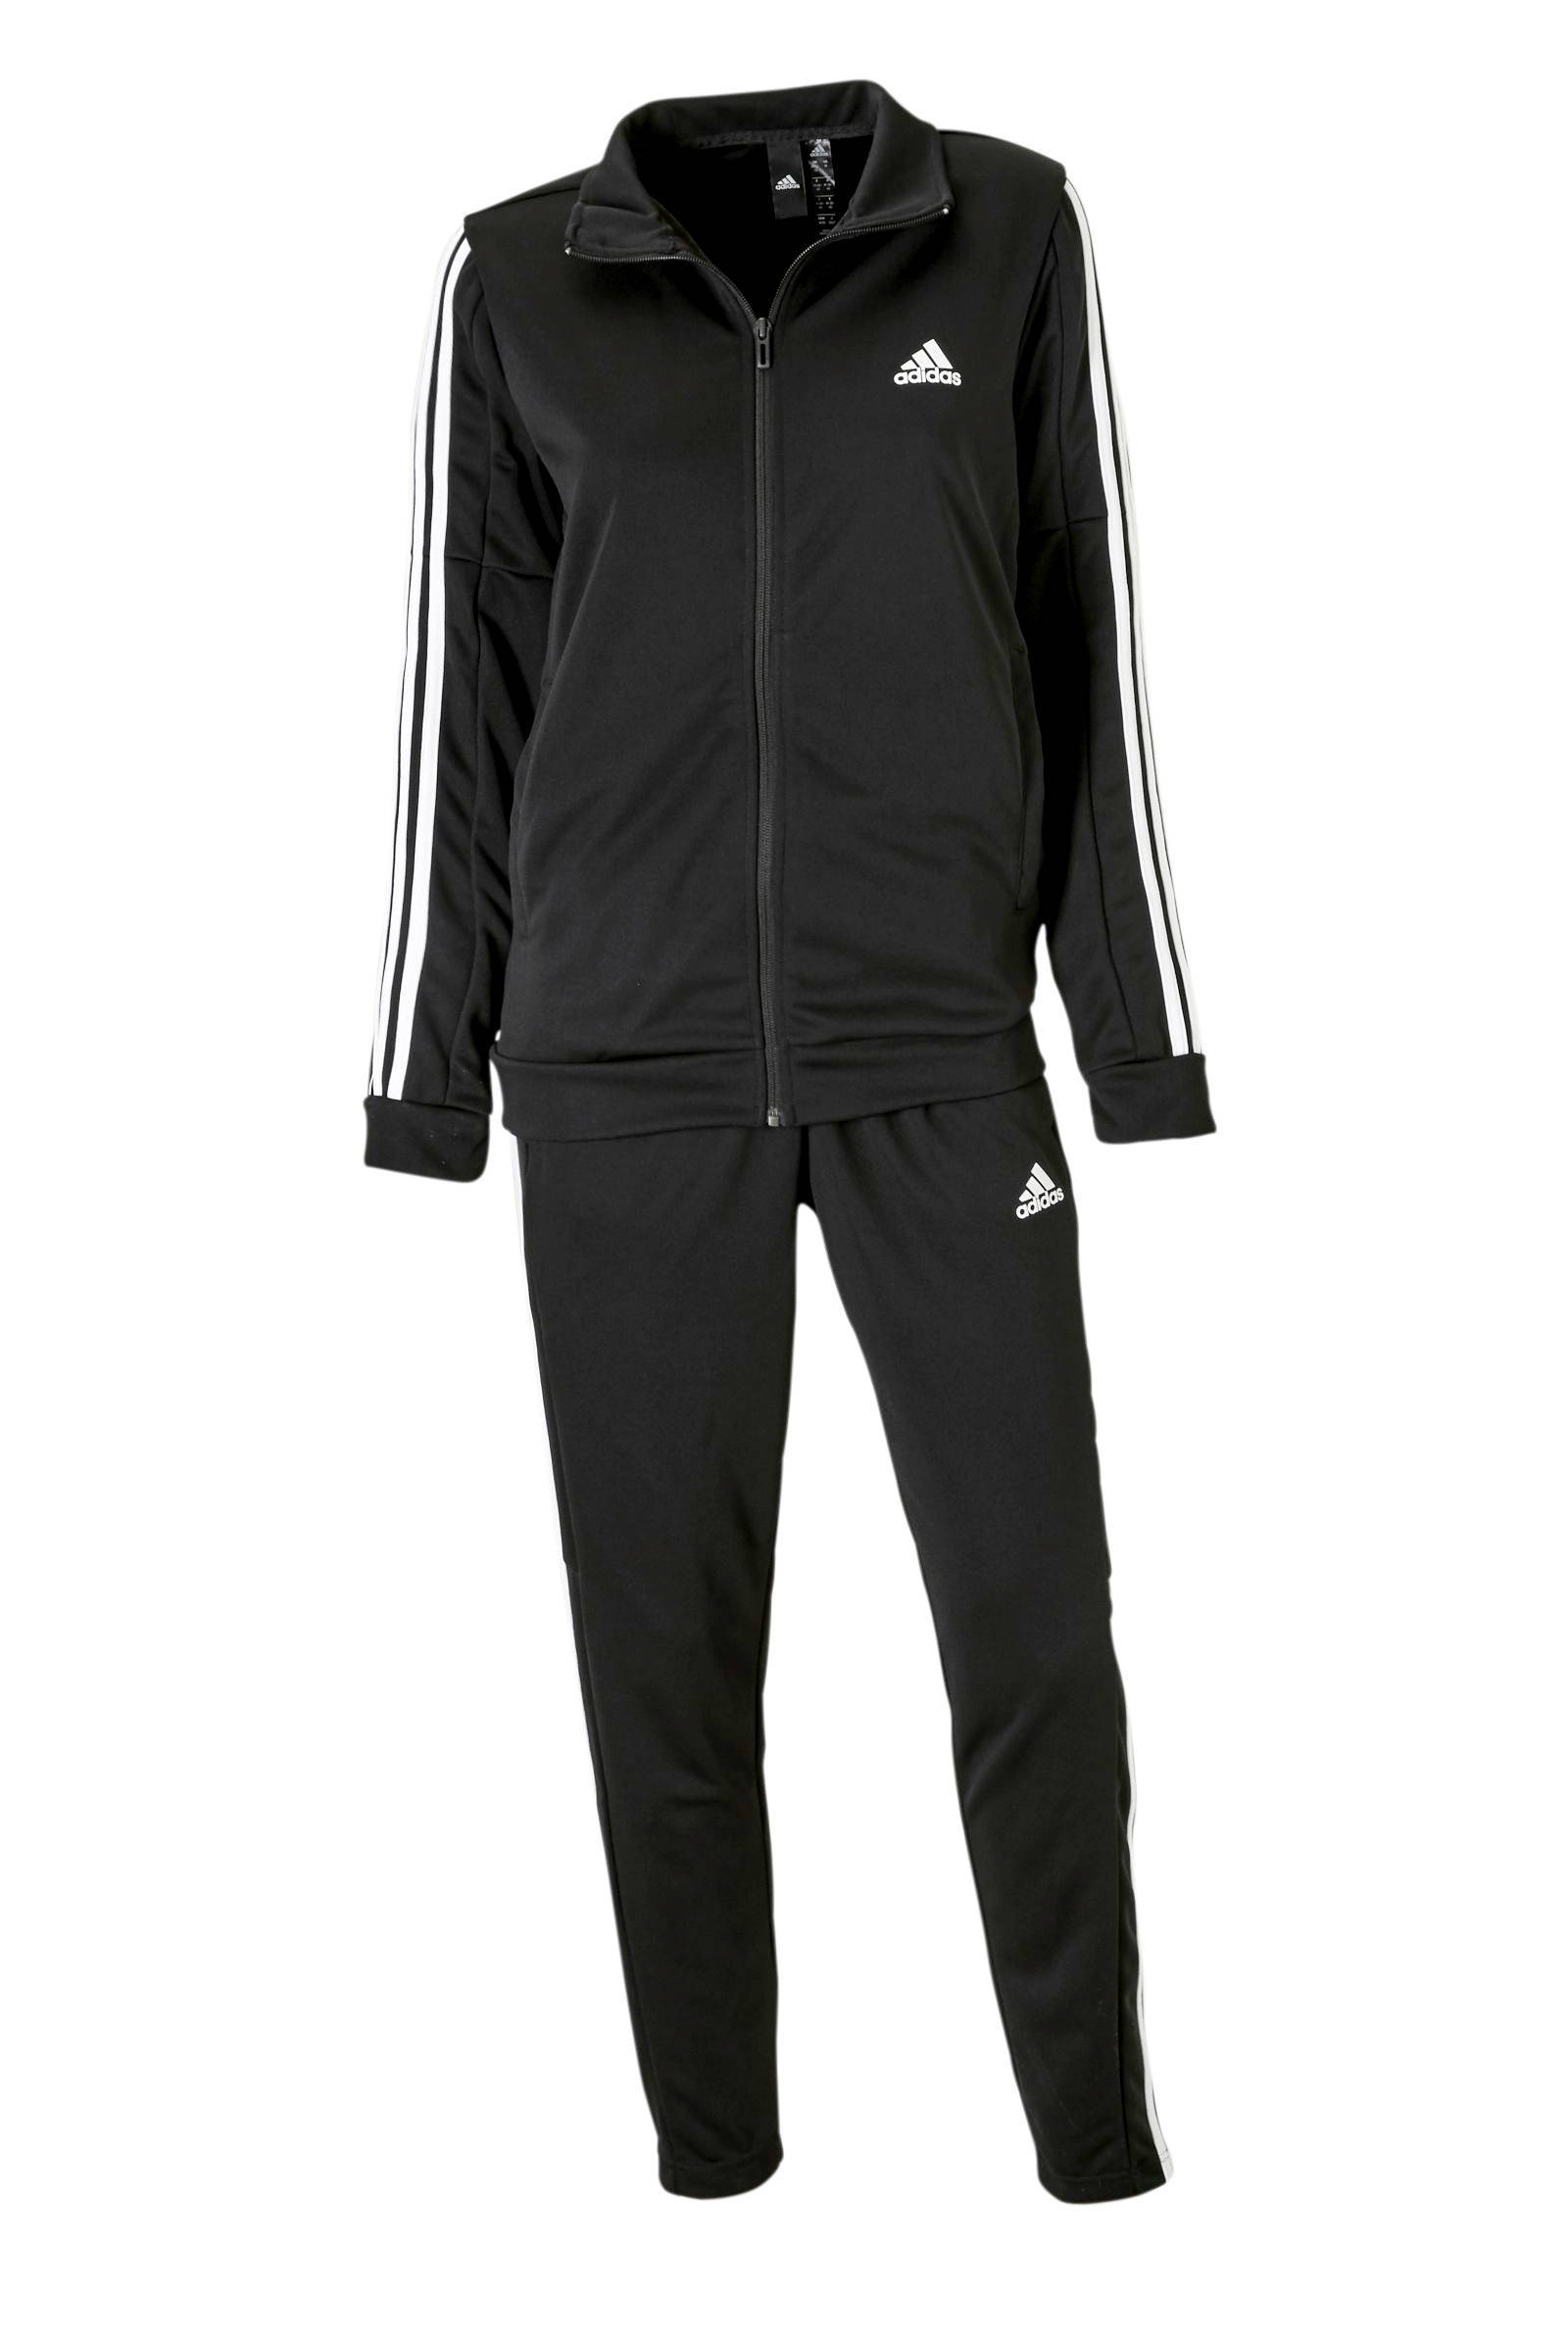 adidas Performance trainingspak zwartwit | wehkamp